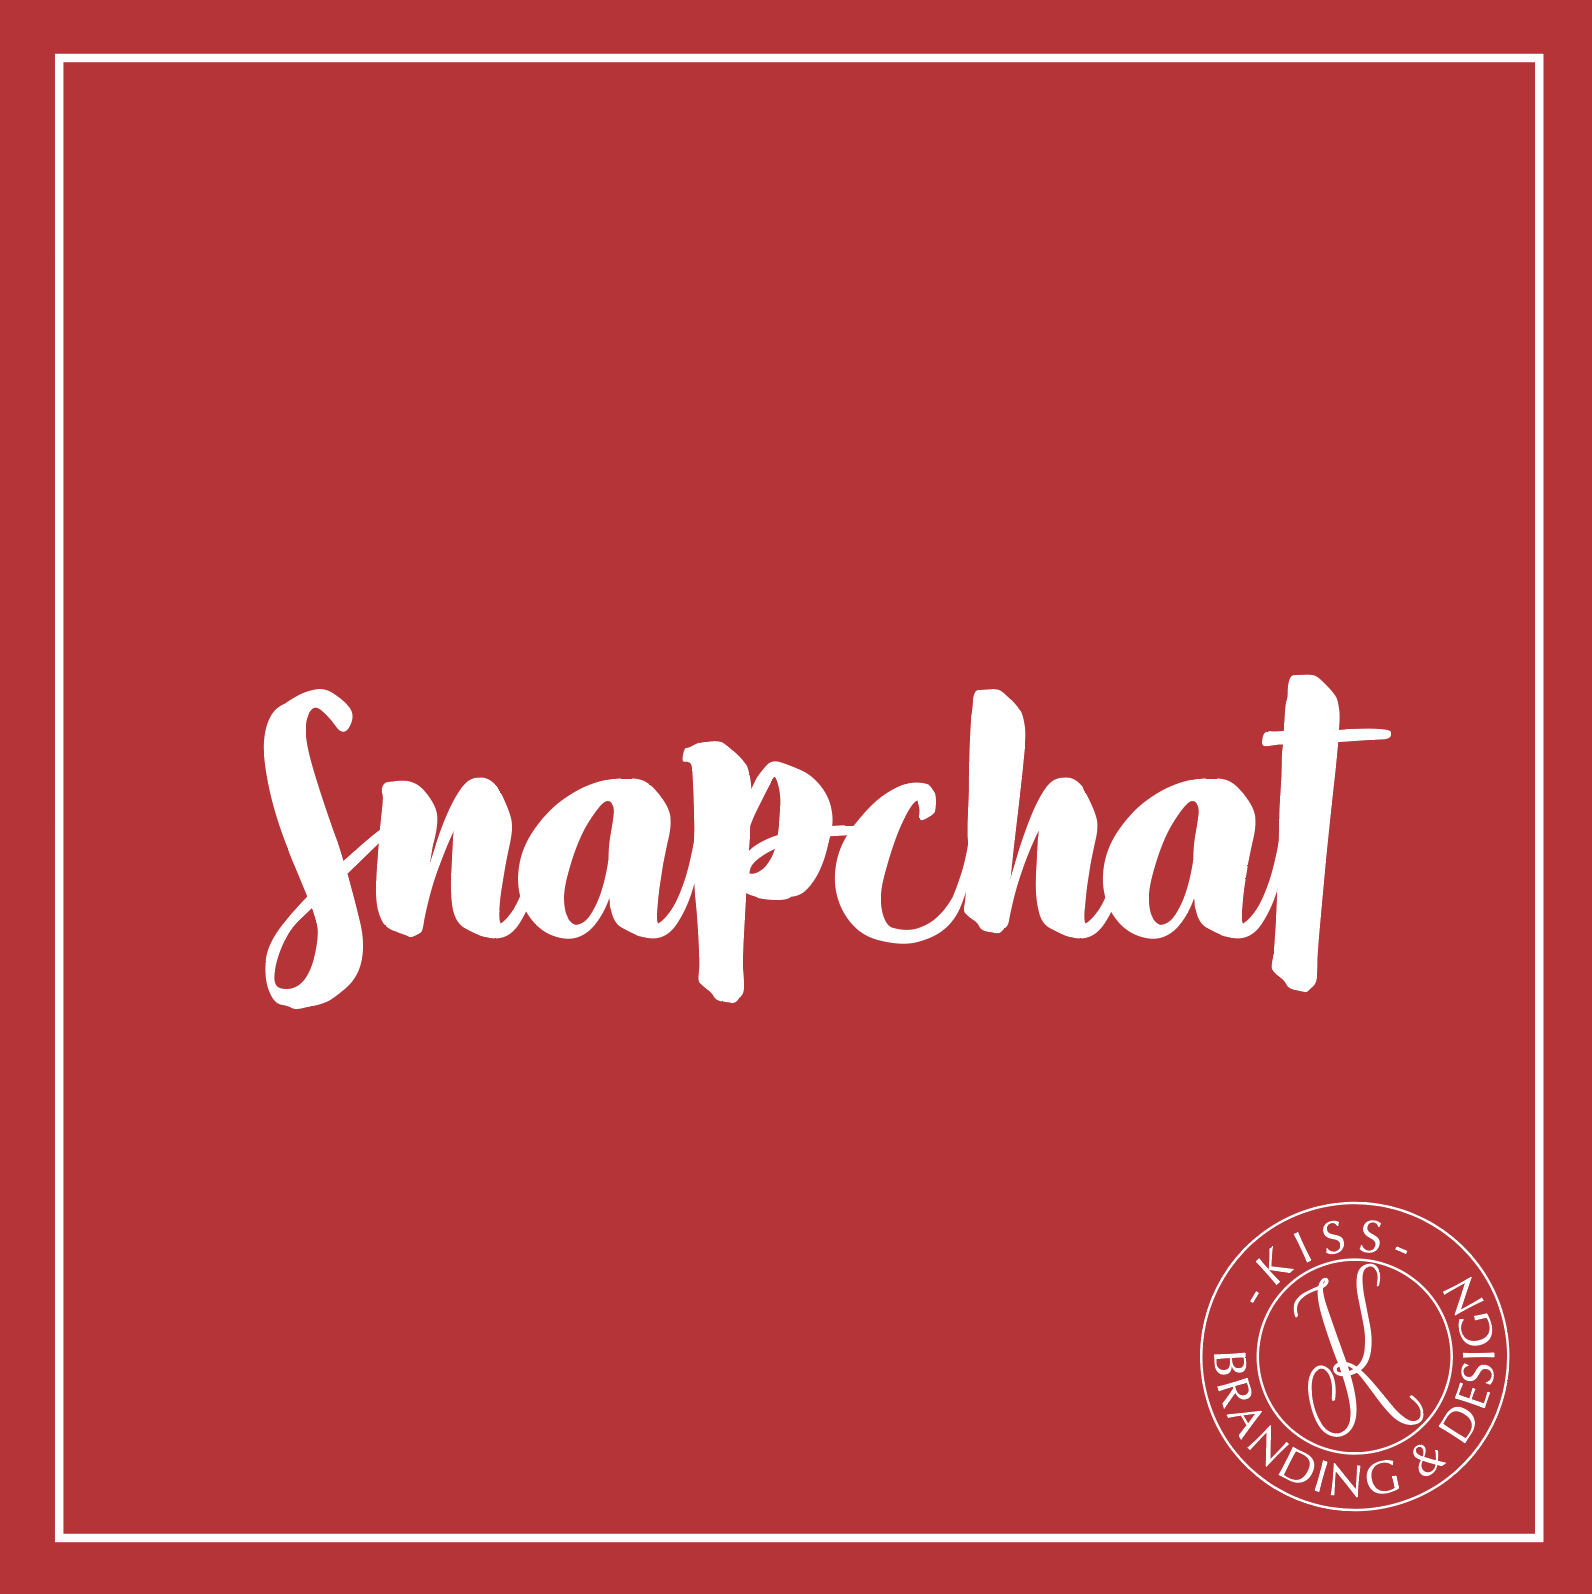 Use Snapchat social media tools to grow your business and